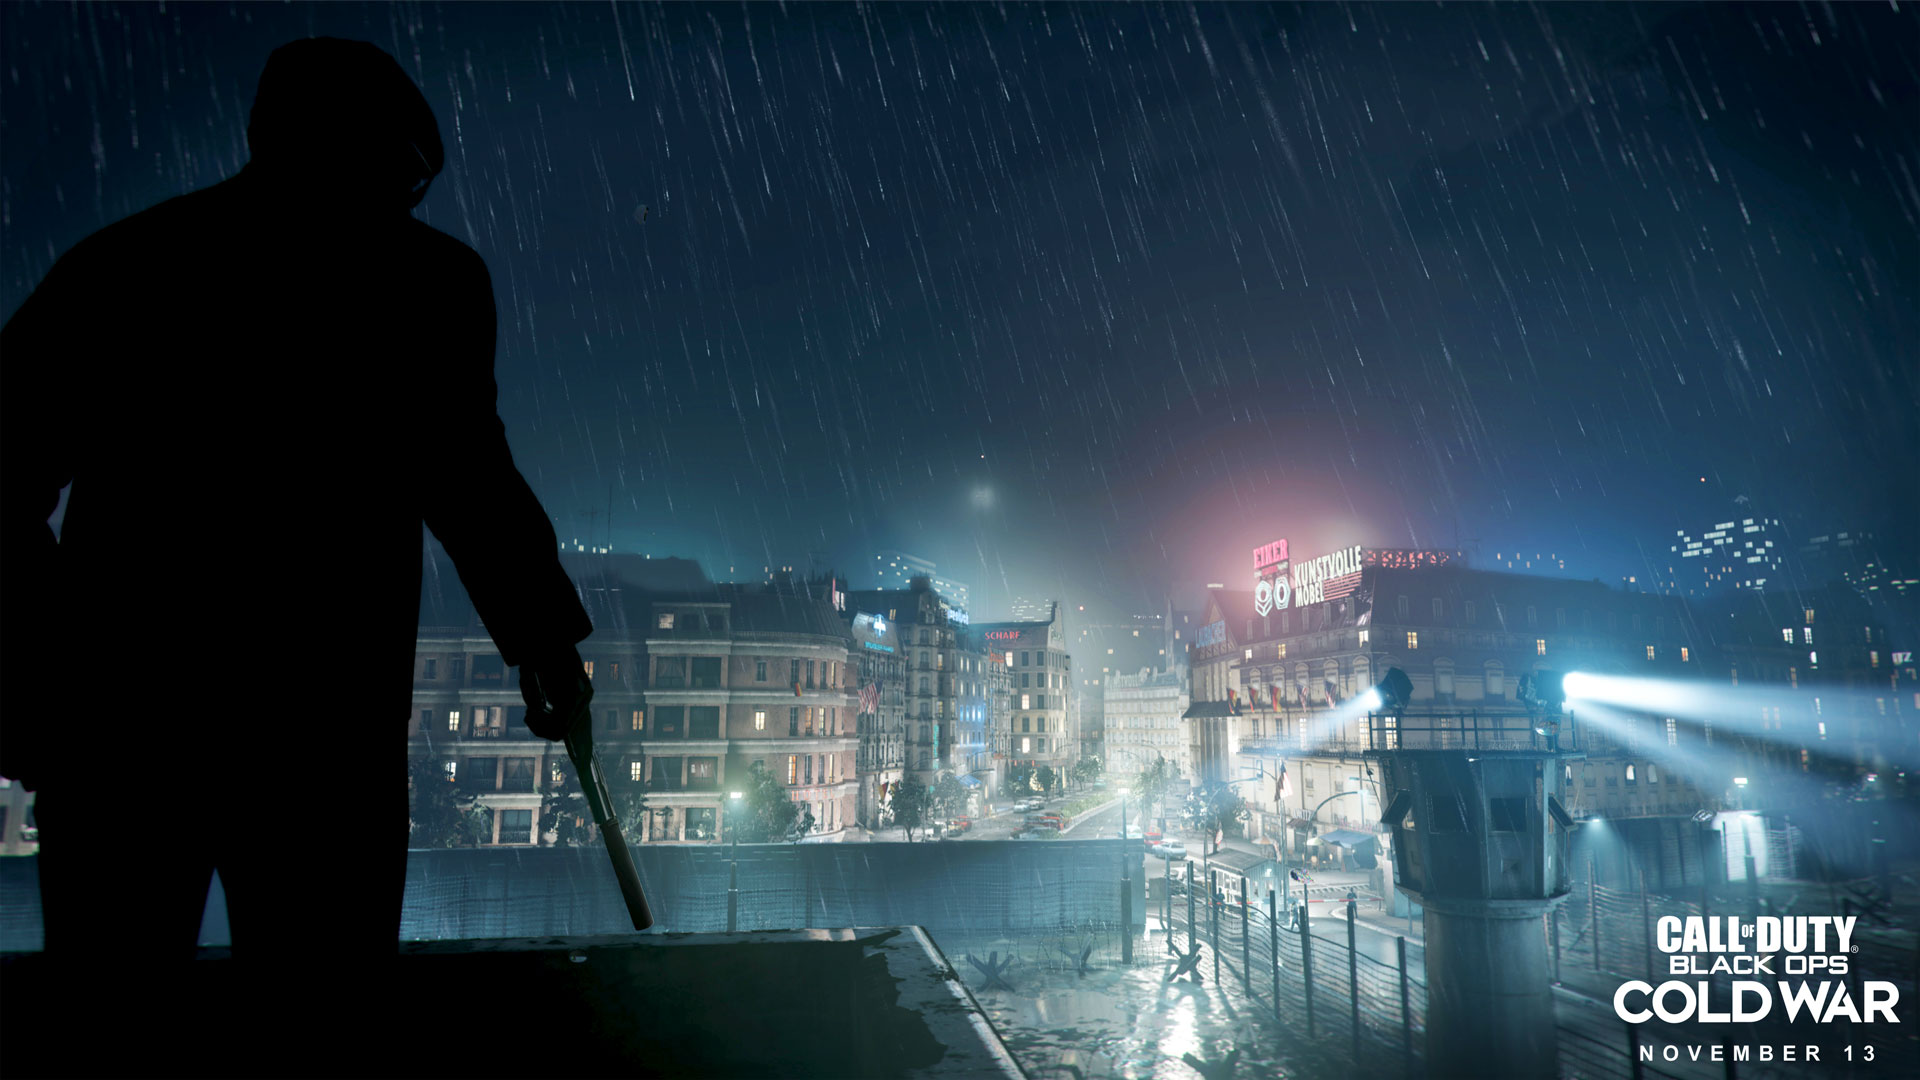 A soldier overlooks the city in Call of Duty: Black Ops Cold War